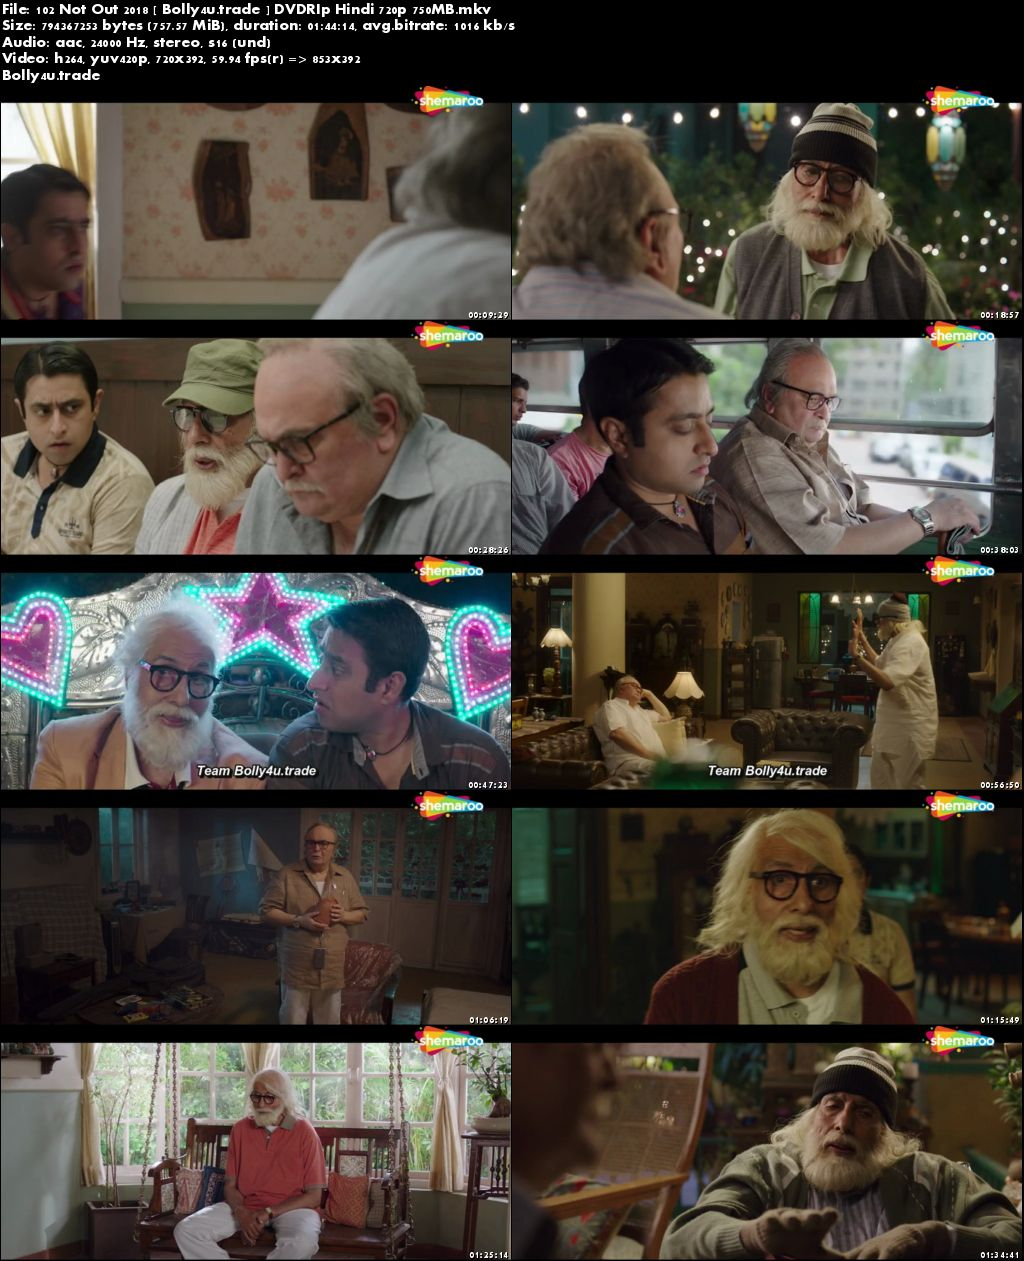 102 Not Out 2018 DVDRip 300MB Full Hindi Movie Download 480p